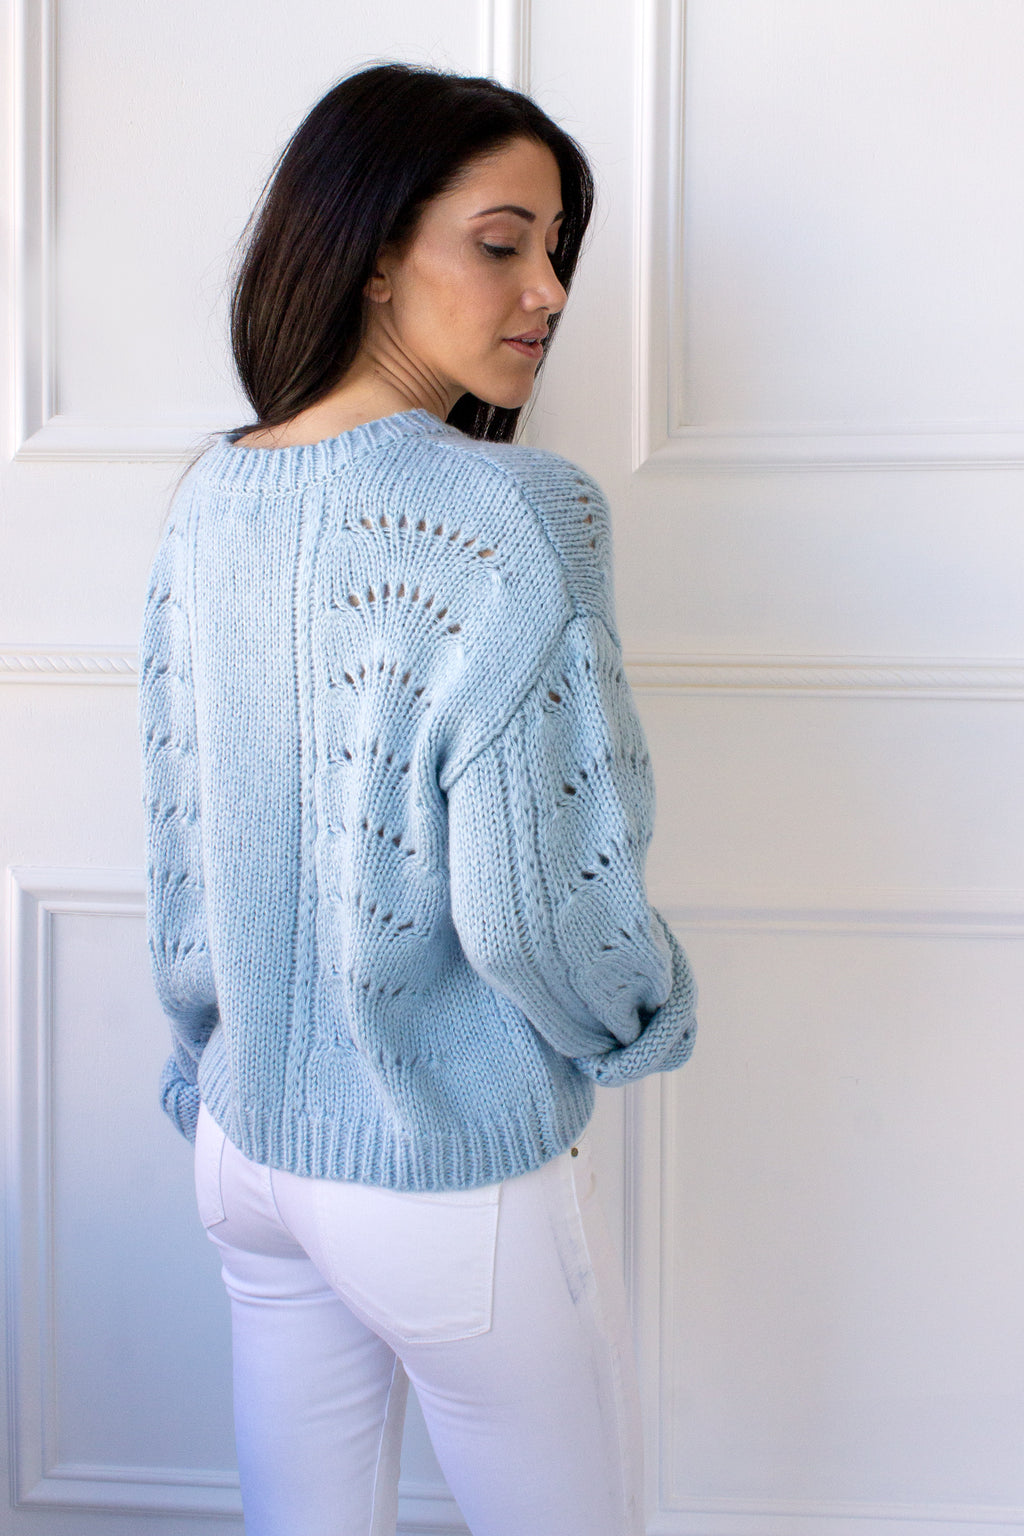 Persephone Sweater - blue